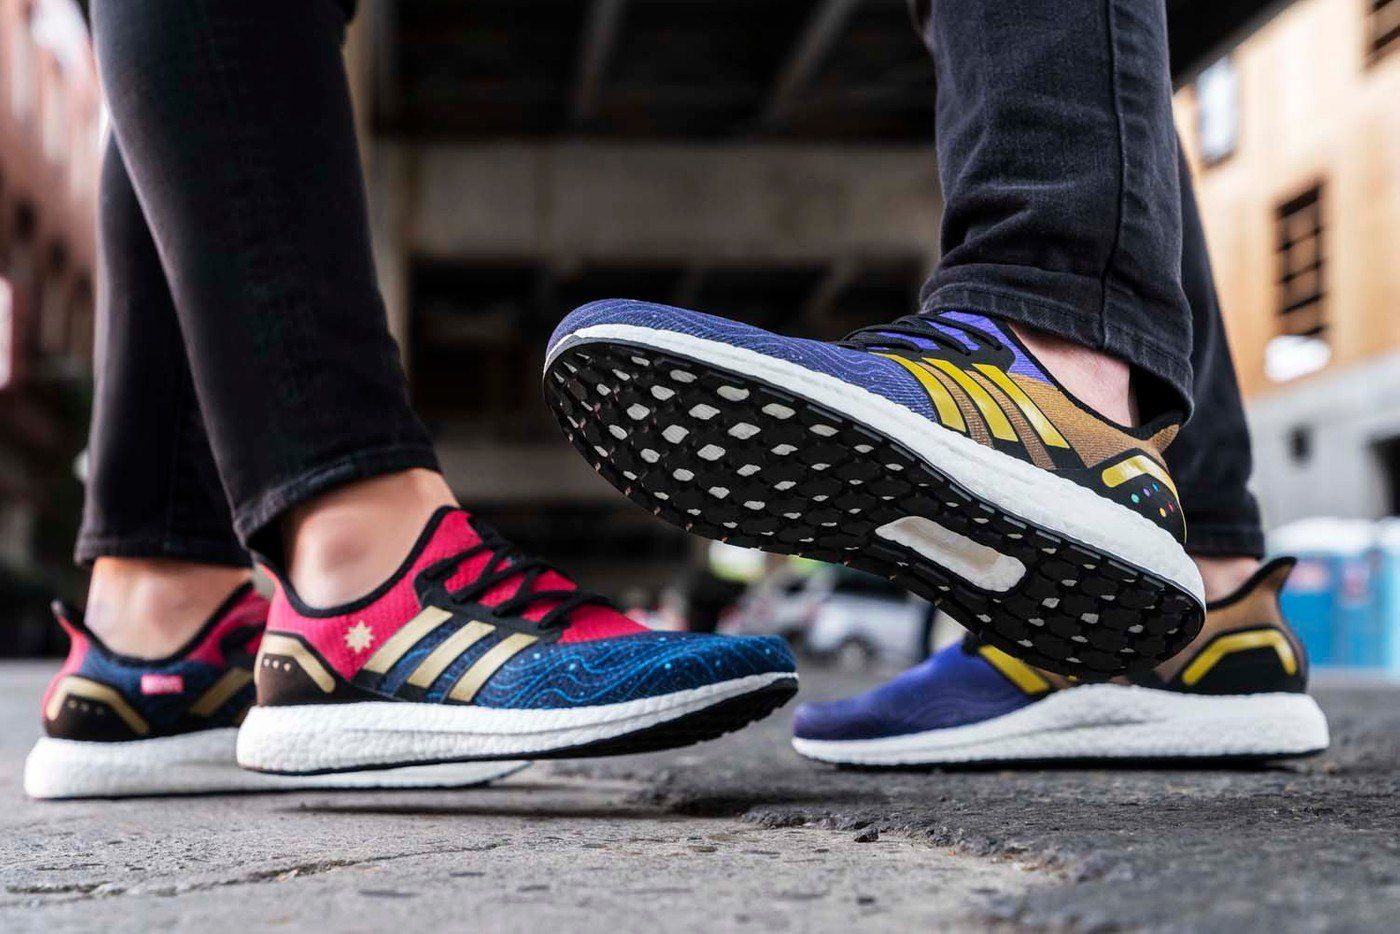 adidas AM4 Captain Marvel Grailify